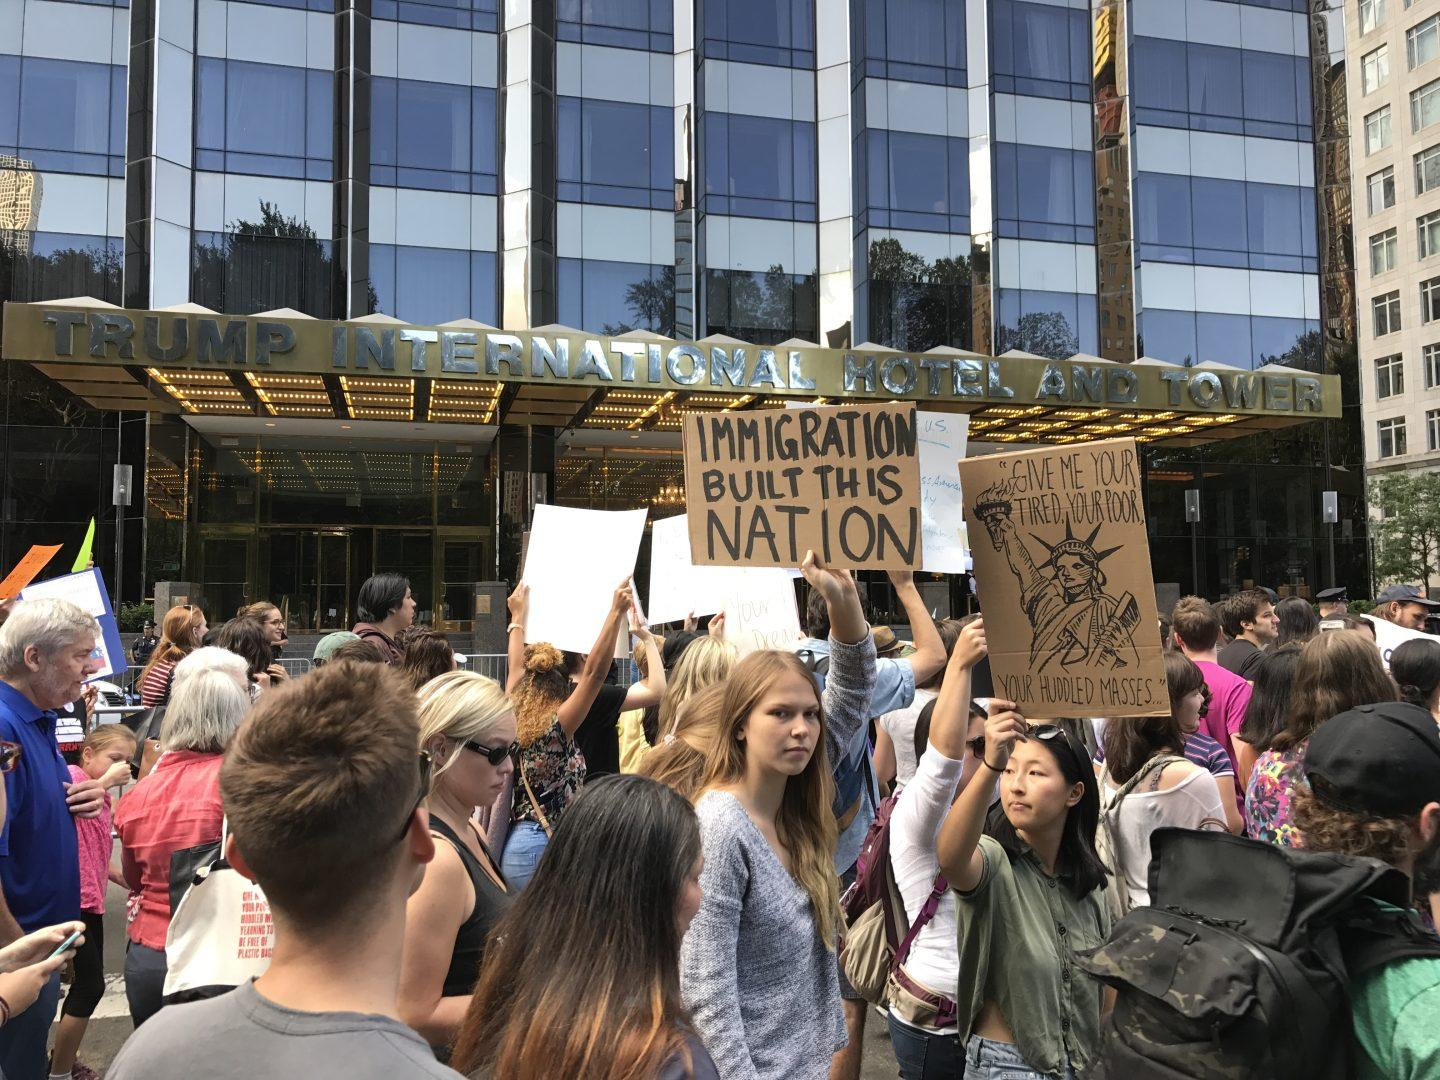 New Yorkers gathered in Columbus Circle on September 9 to protest Trump's decision to end DACA. (STEPHAN KOZUB/THE OBSERVER)